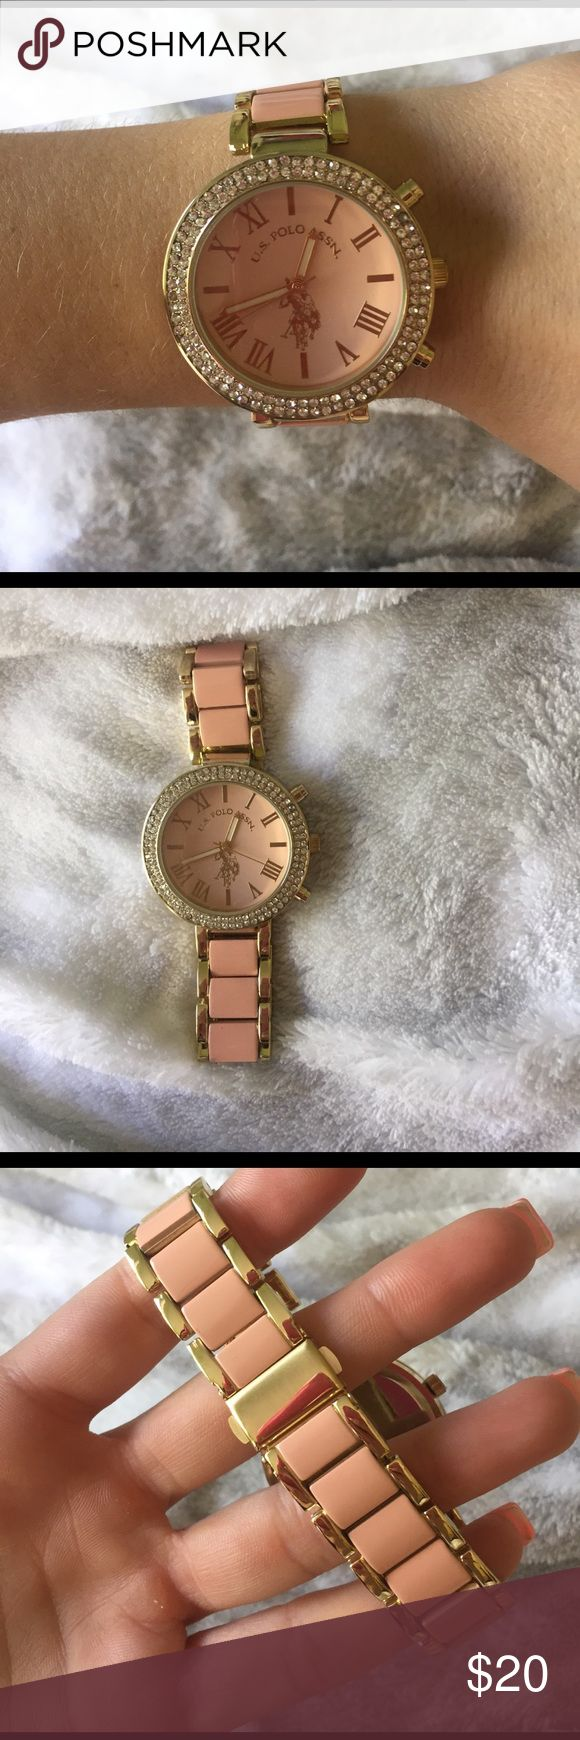 U.S. Polo Watch U.S. Polo watch. Super cute! Perfect for any occasion. Gold and salmon pink colored. Rhinestones around the face of the Watch and Roman numerals as the numbers. Never been worn, and no links were taken out. U.S. Polo Assn. Accessories Watches